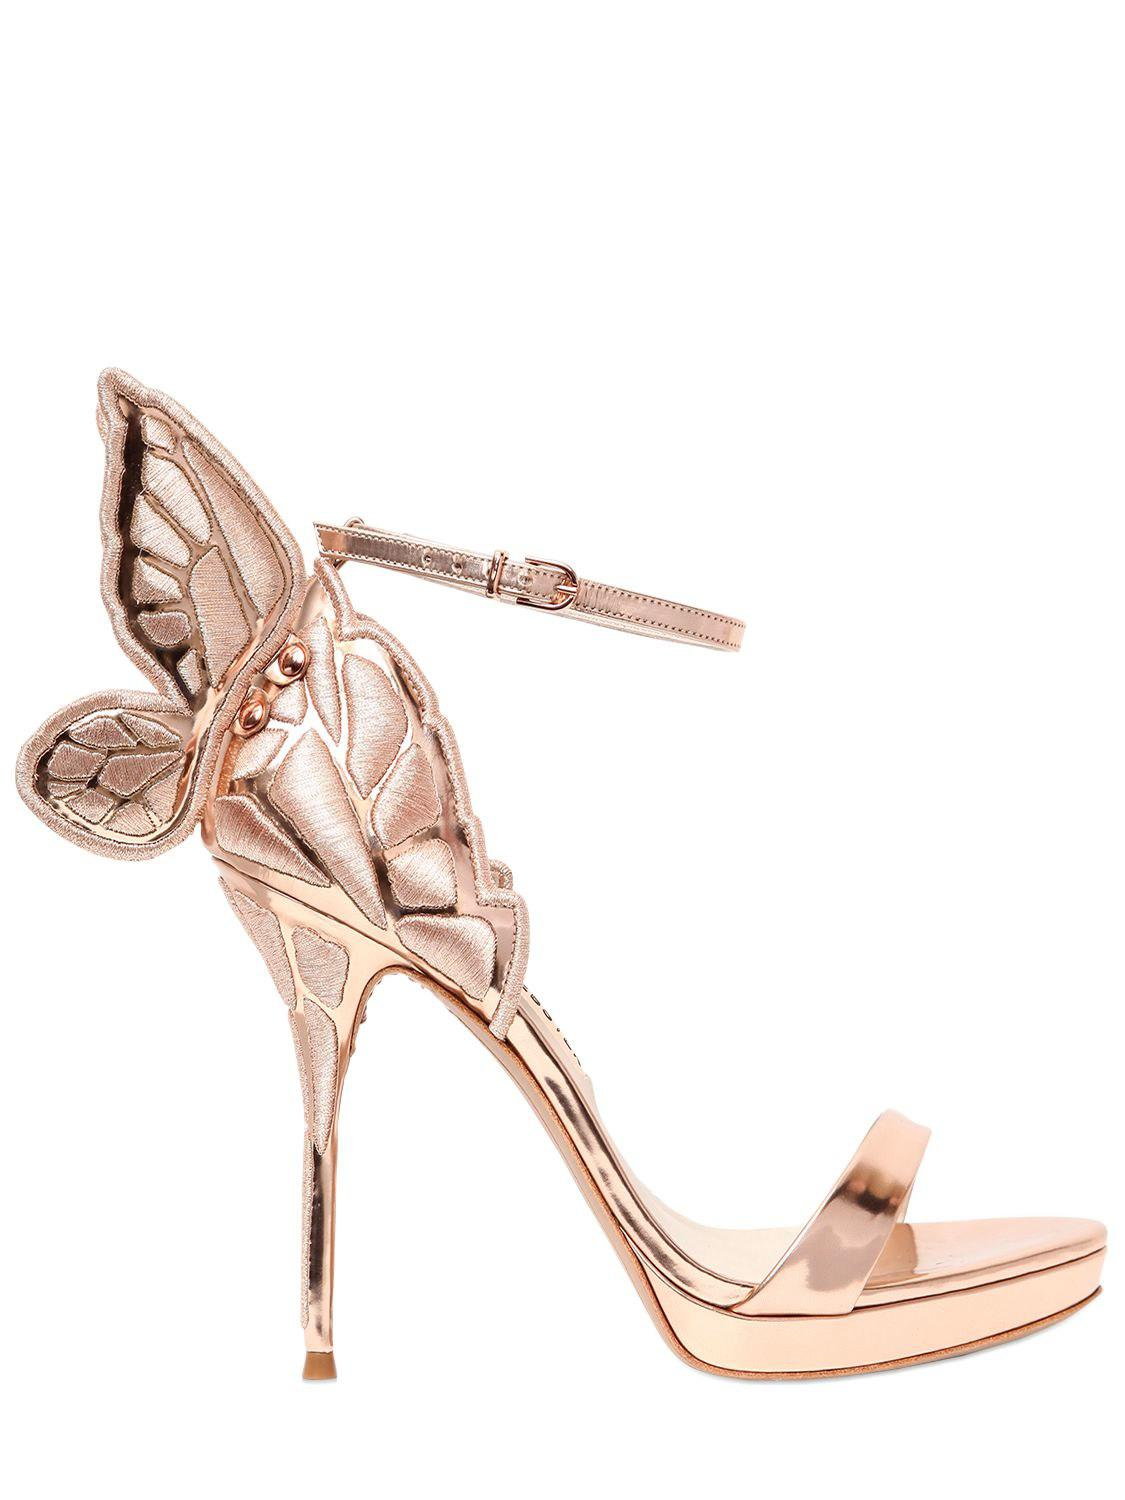 Chiara Metallic Leather Sandals - Silver Sophia Webster Perfect Online With Paypal Cheap Online RZl2GnQ7